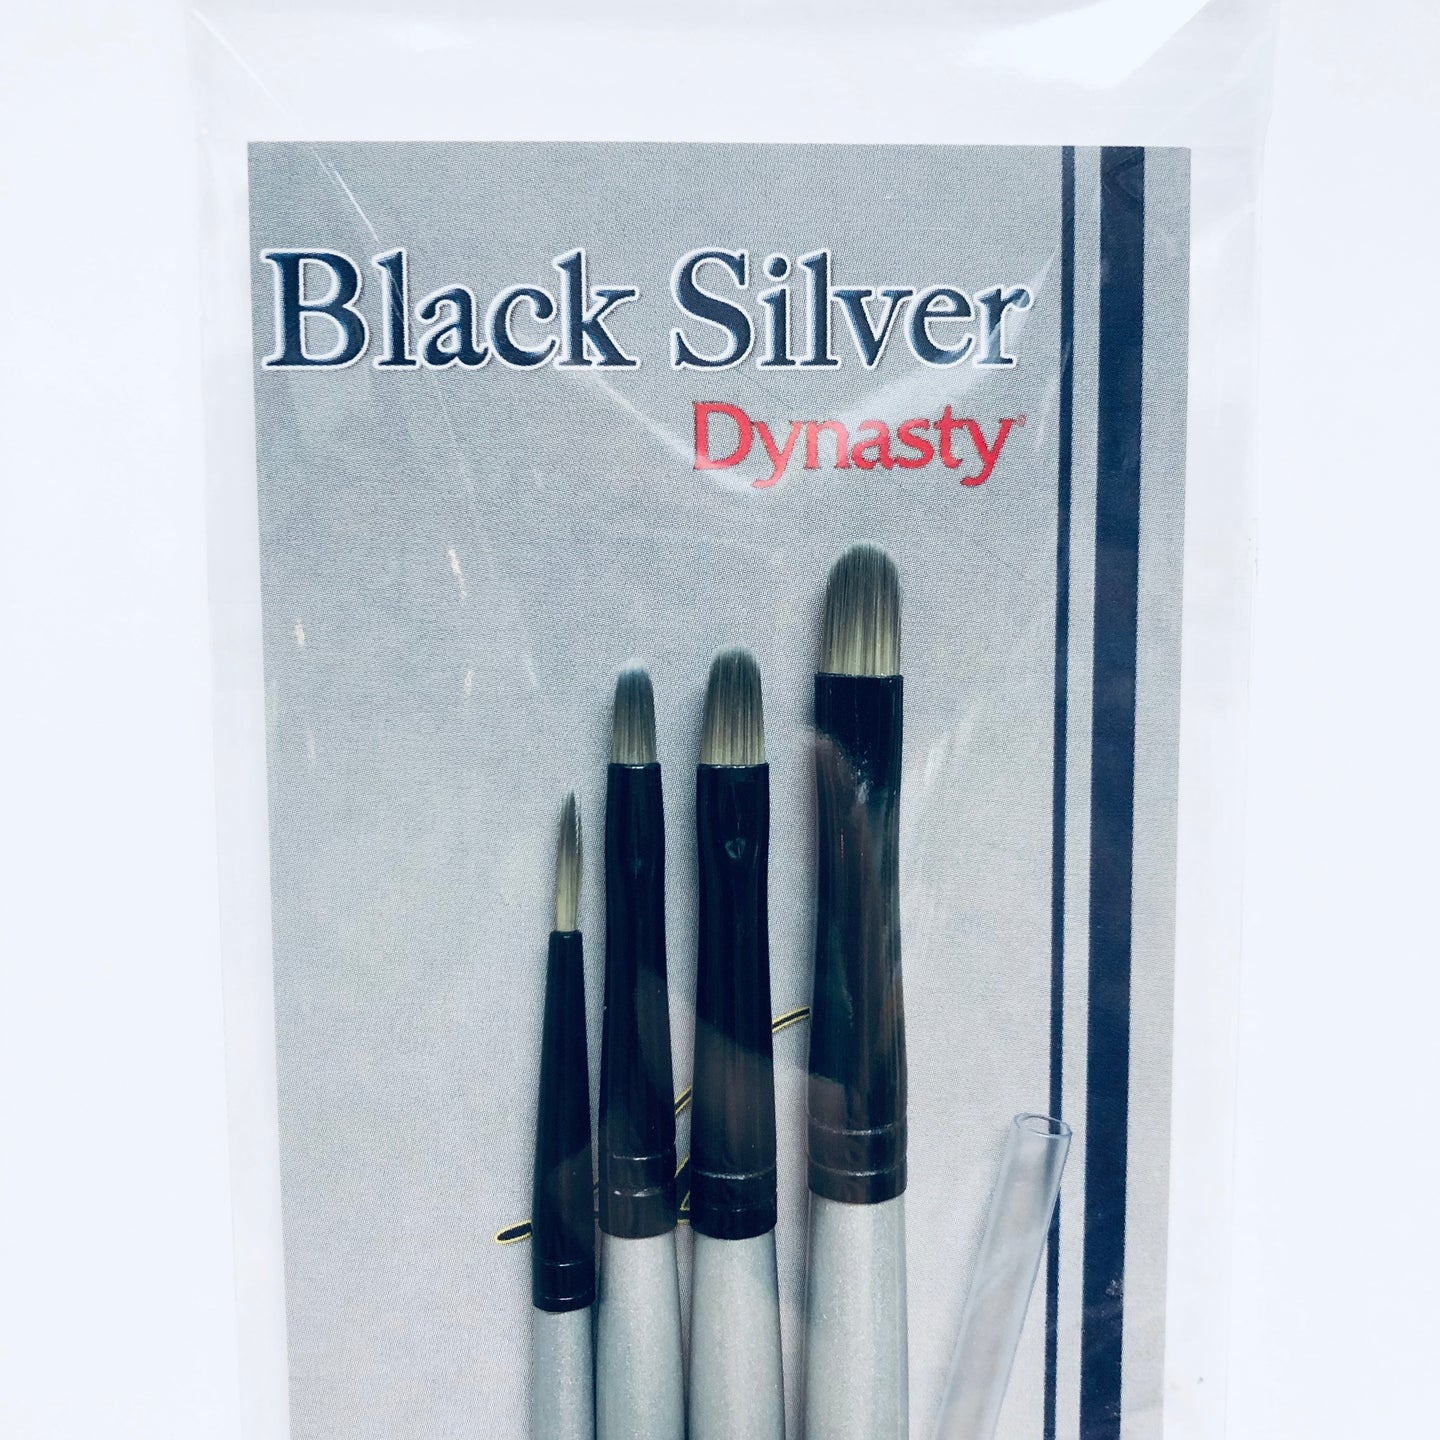 Dynasty Black Silver Paint Brush Set 3 BS-SH-3 (32883)